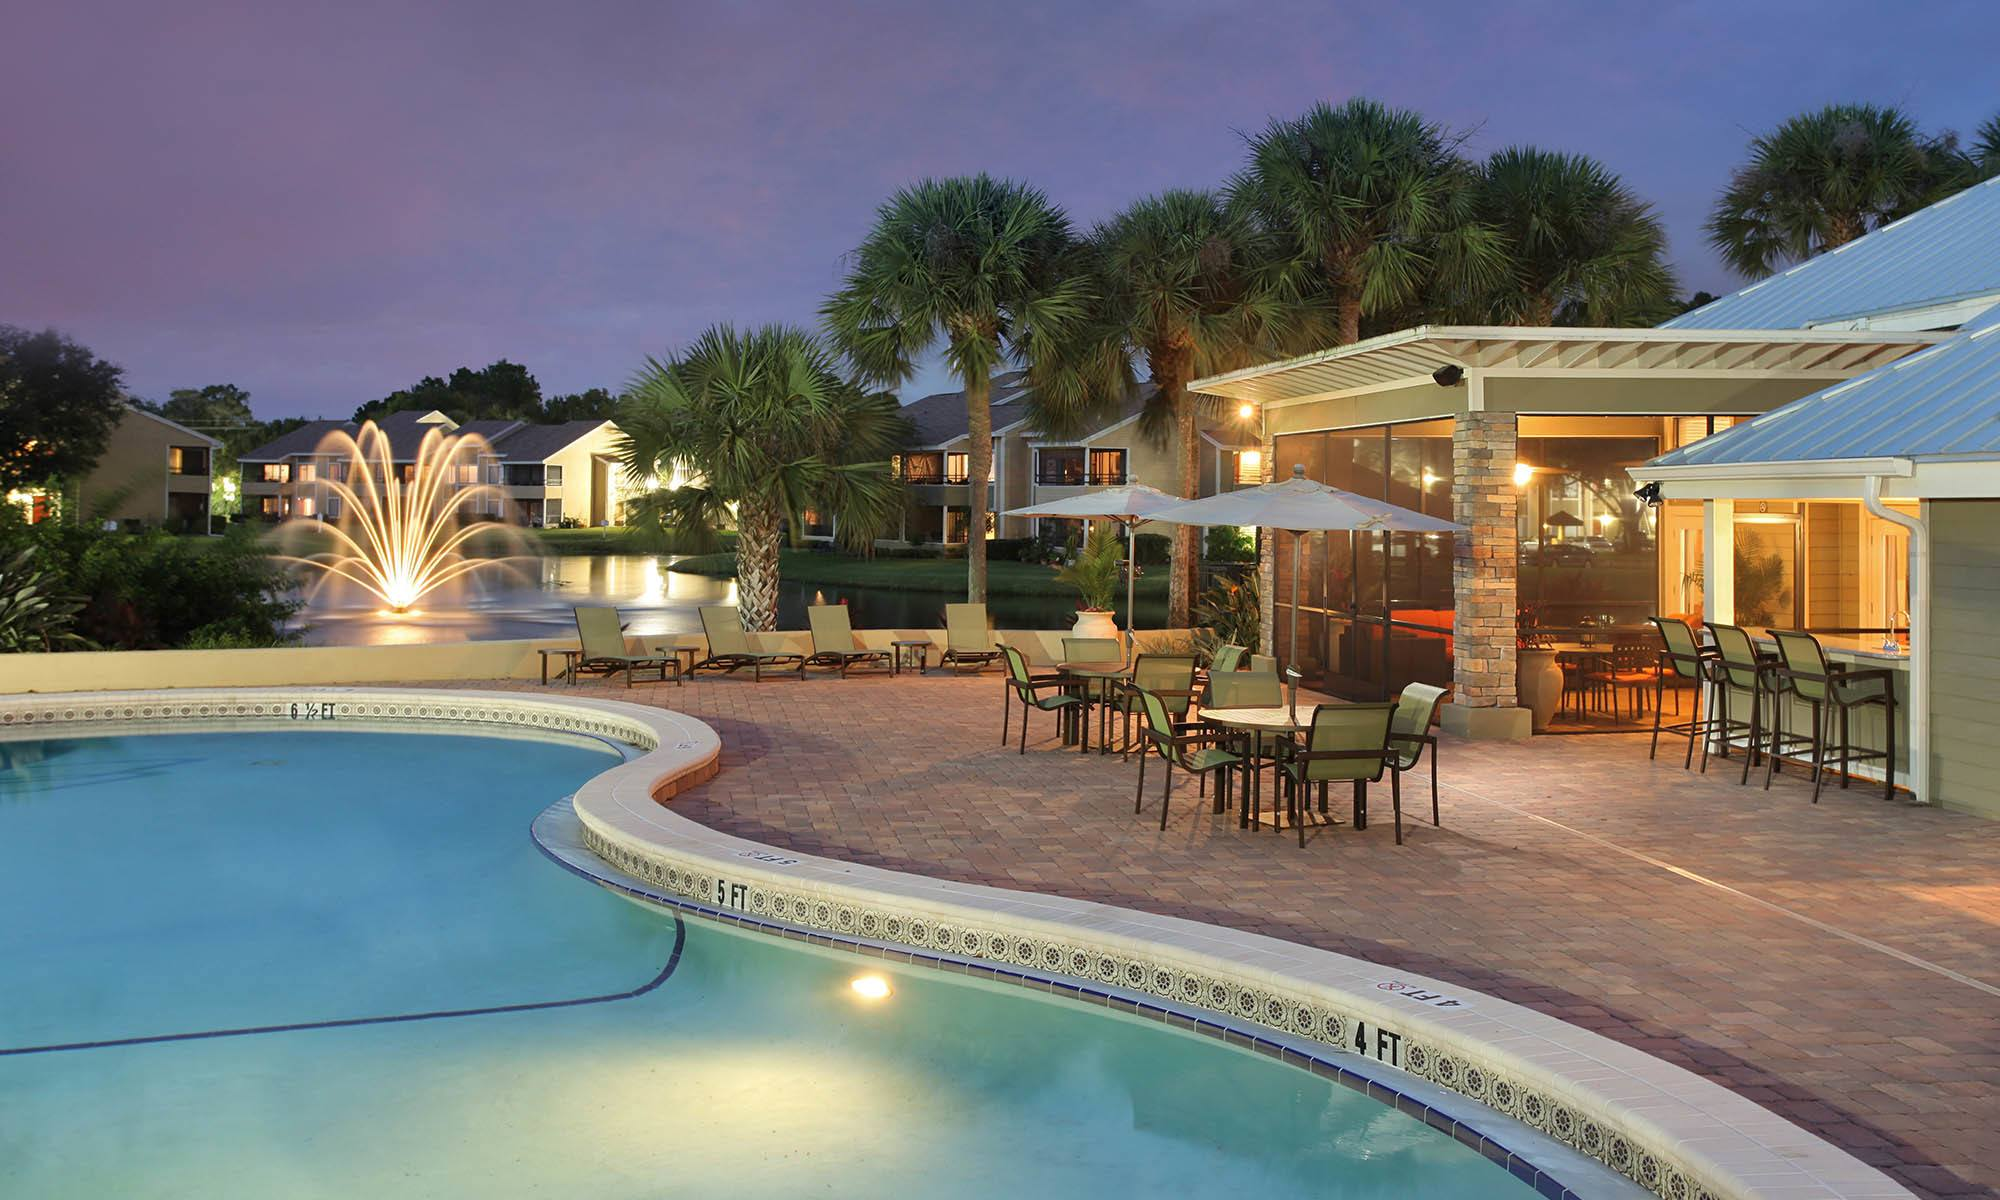 Welcome to Lakes of Northdale Apartments in Tampa, FL